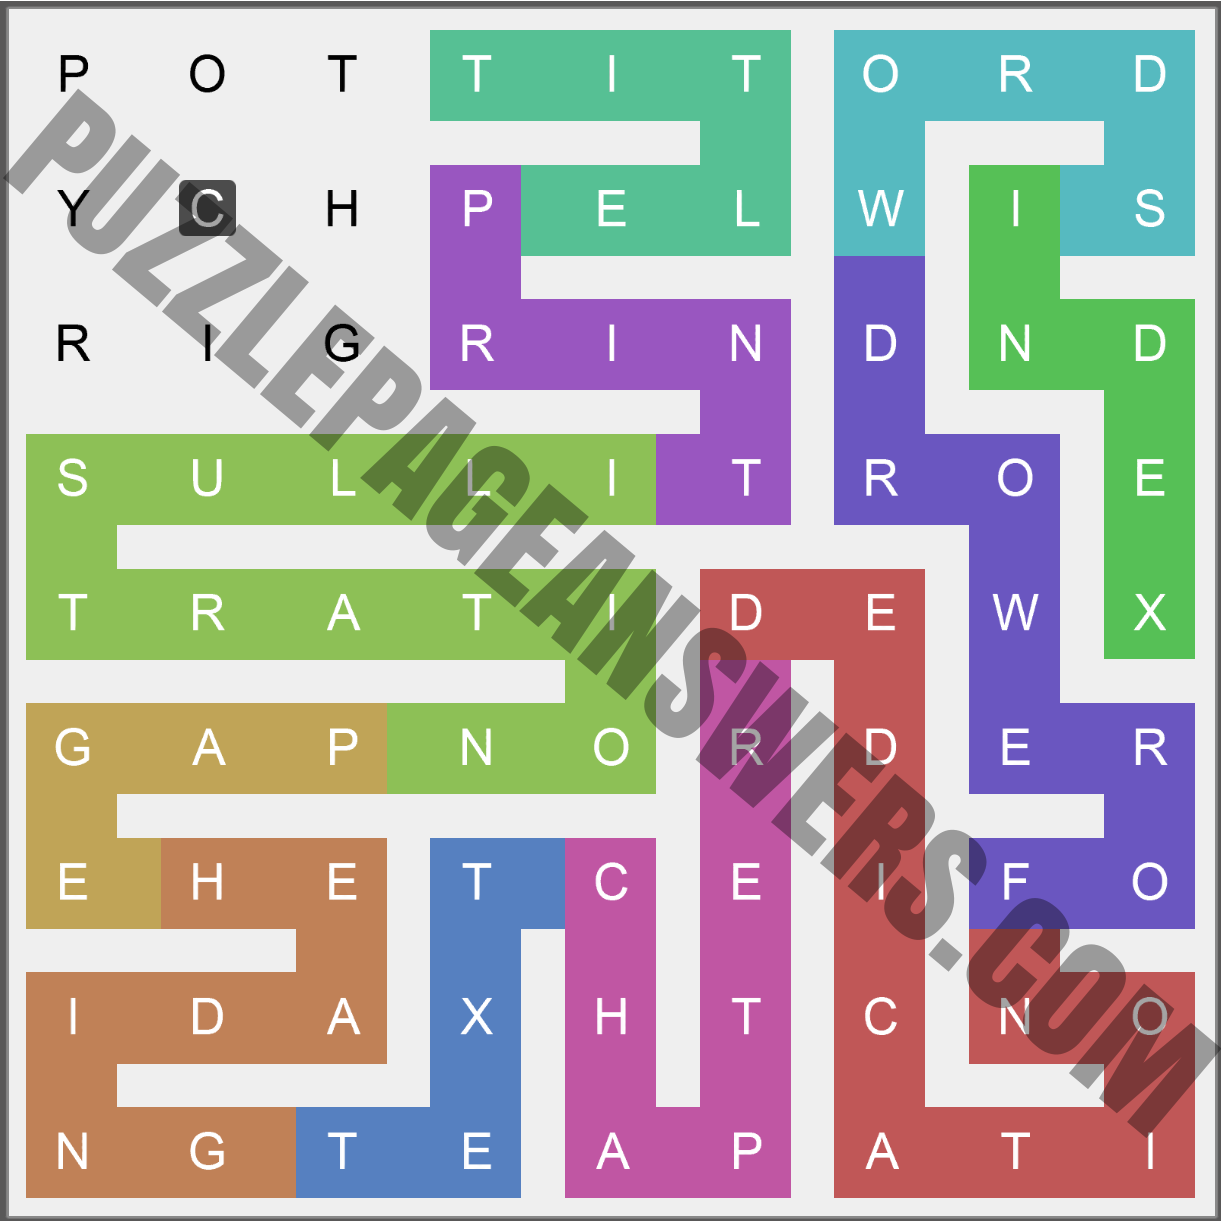 Puzzle Page Words Snake November 4 2020 Answers ...